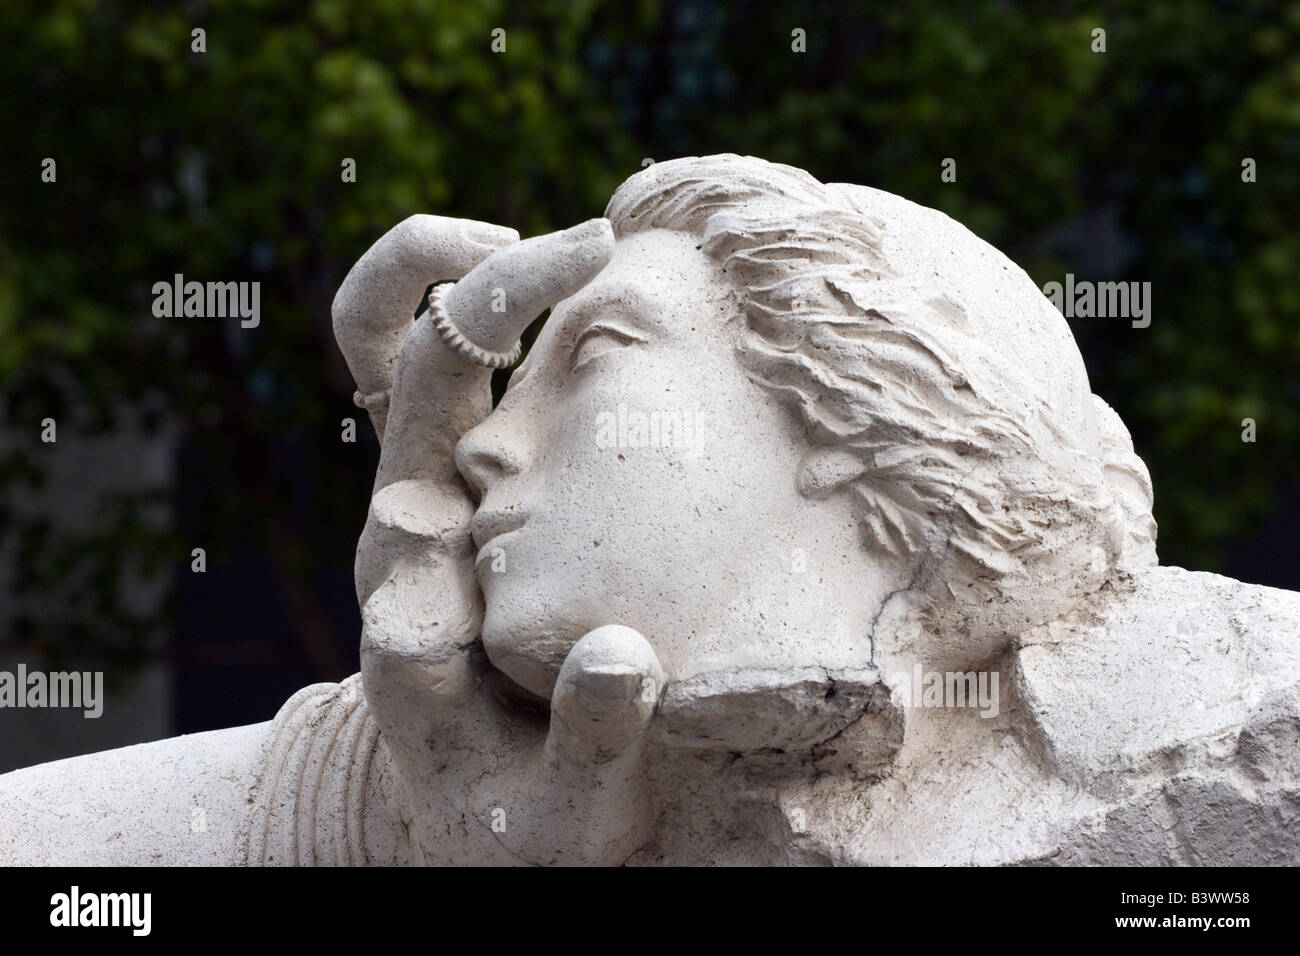 Sculpture moderne art sacramento californie Photo Stock